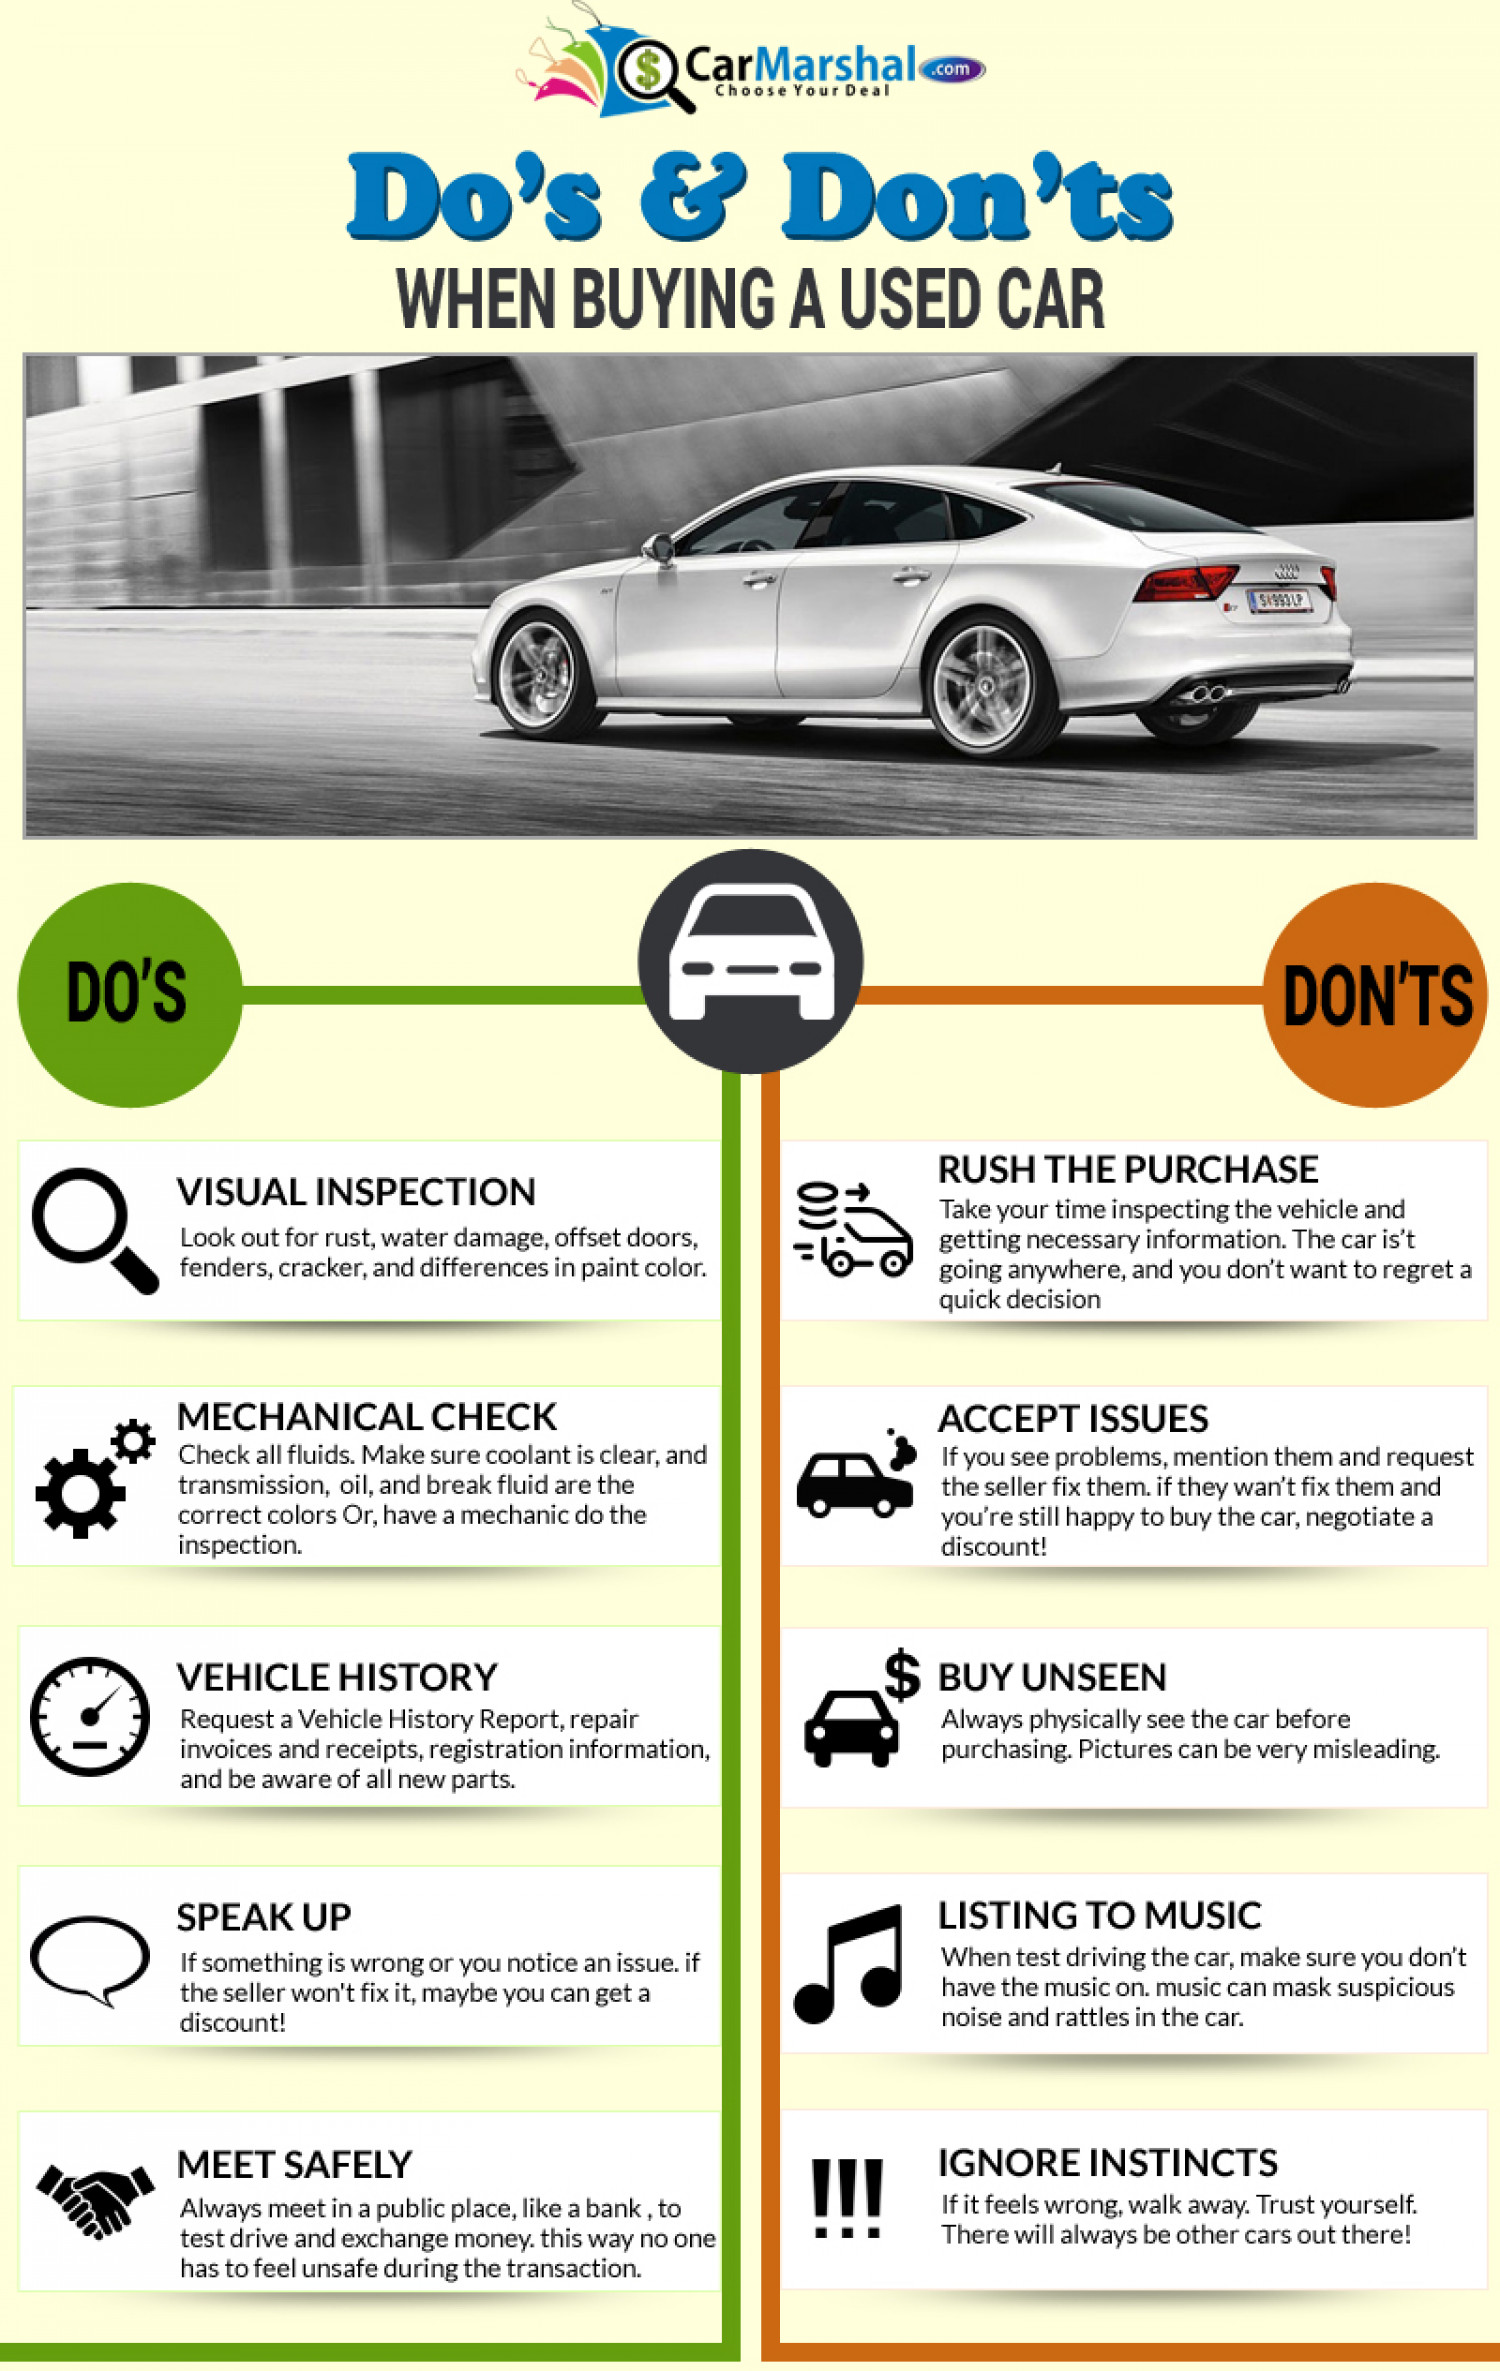 Dos and Don'ts When Buying a Used Car Infographic